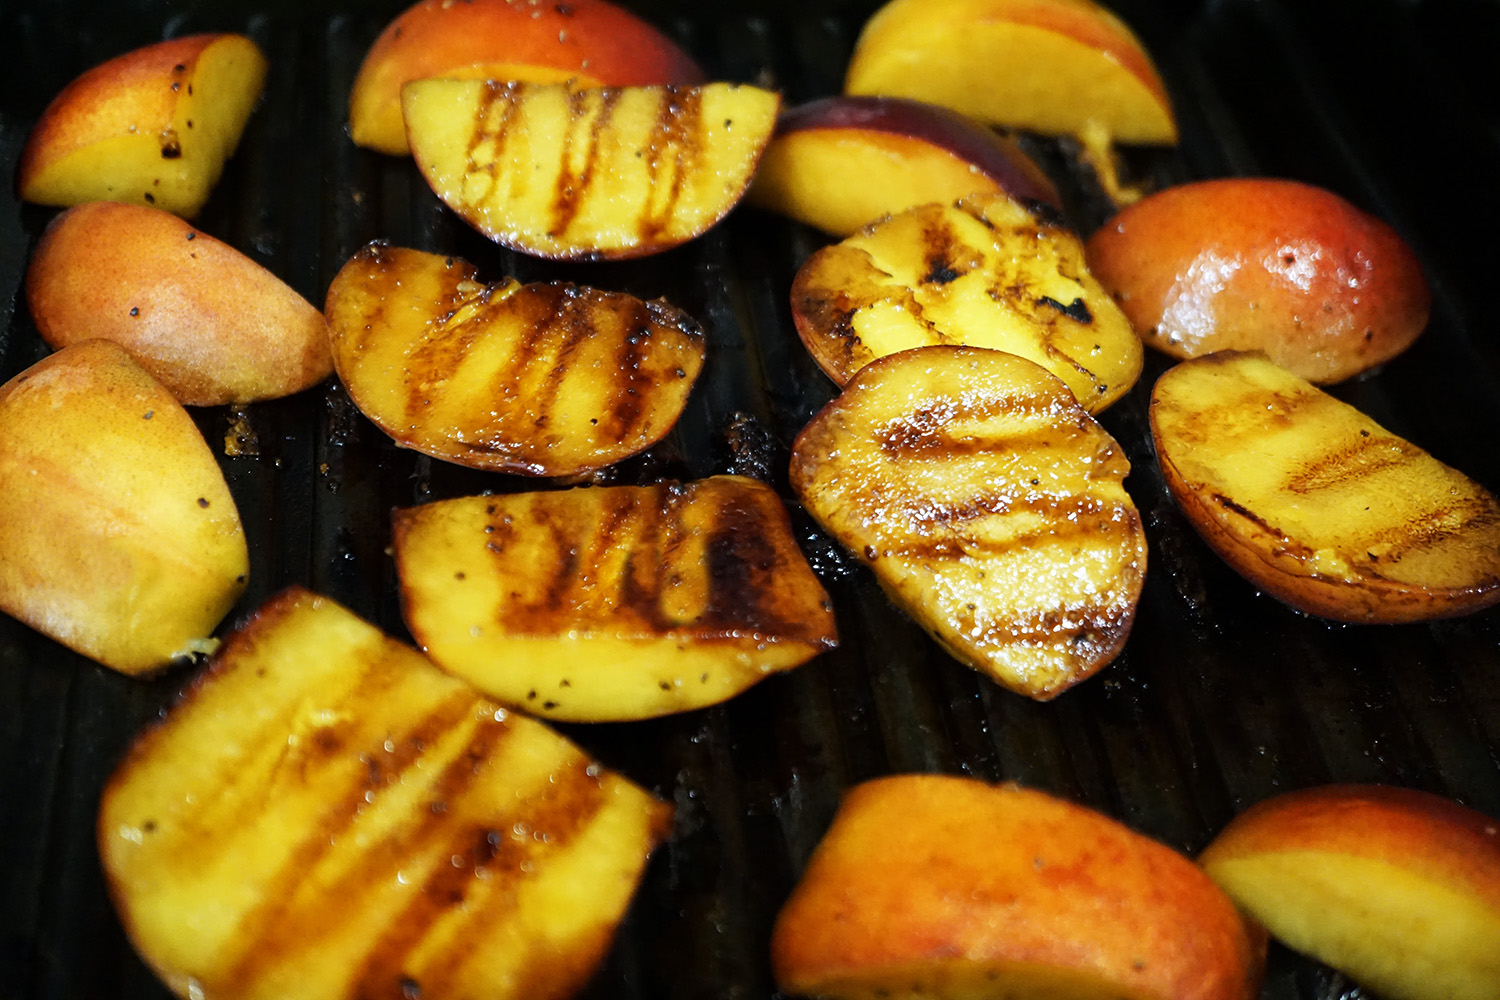 grilled-peaches dishitgirl.jpg